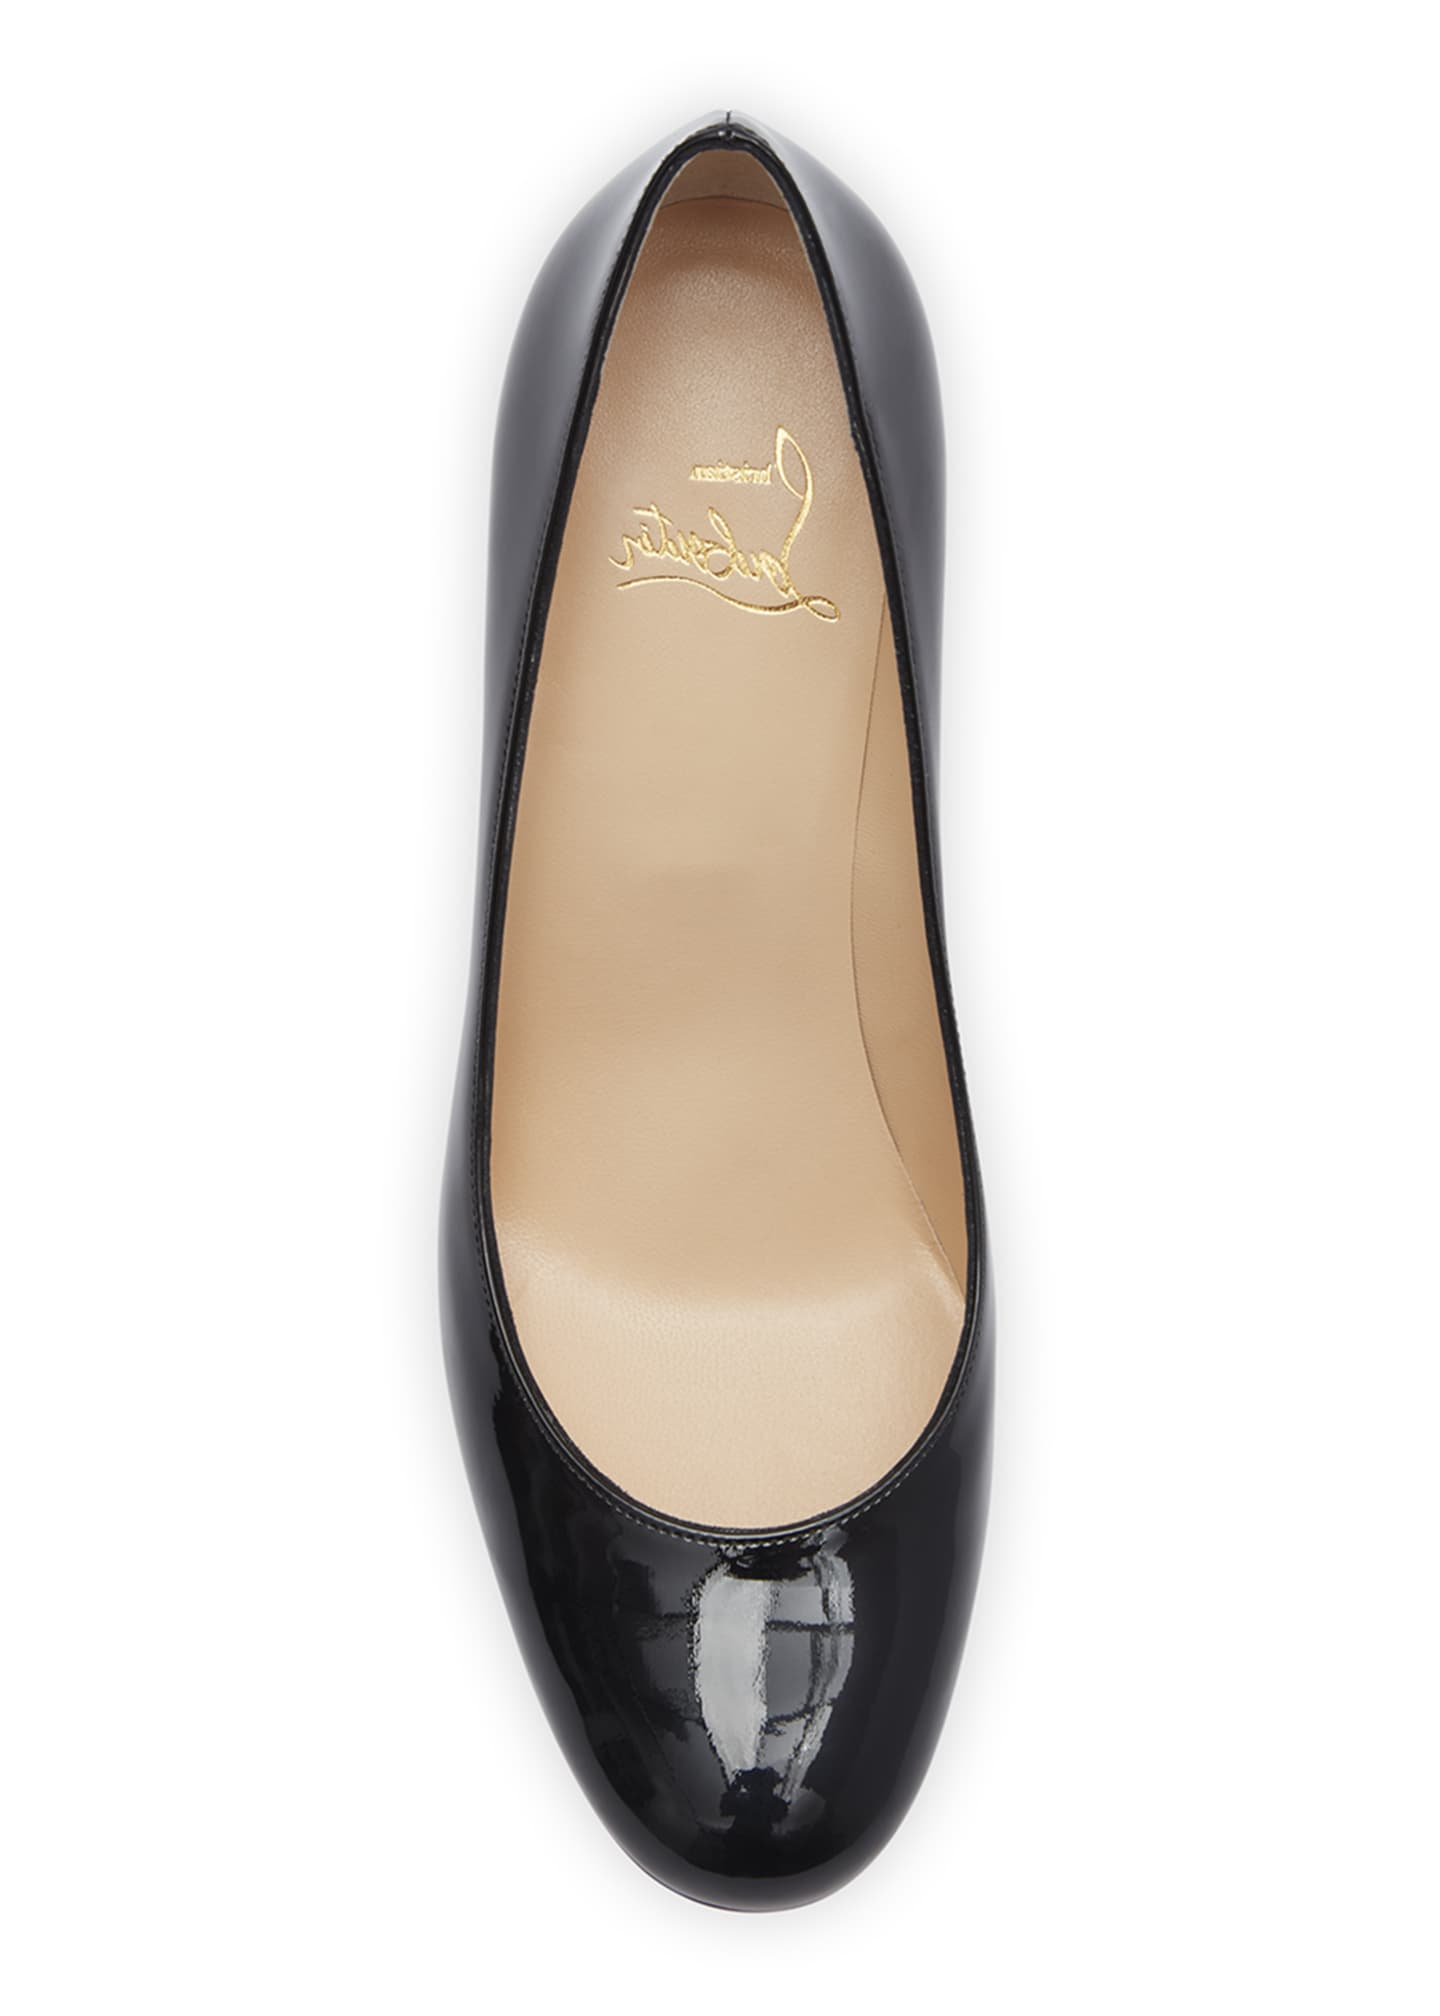 Image 4 of 5: Baobab 85 Patent Red Sole Pumps